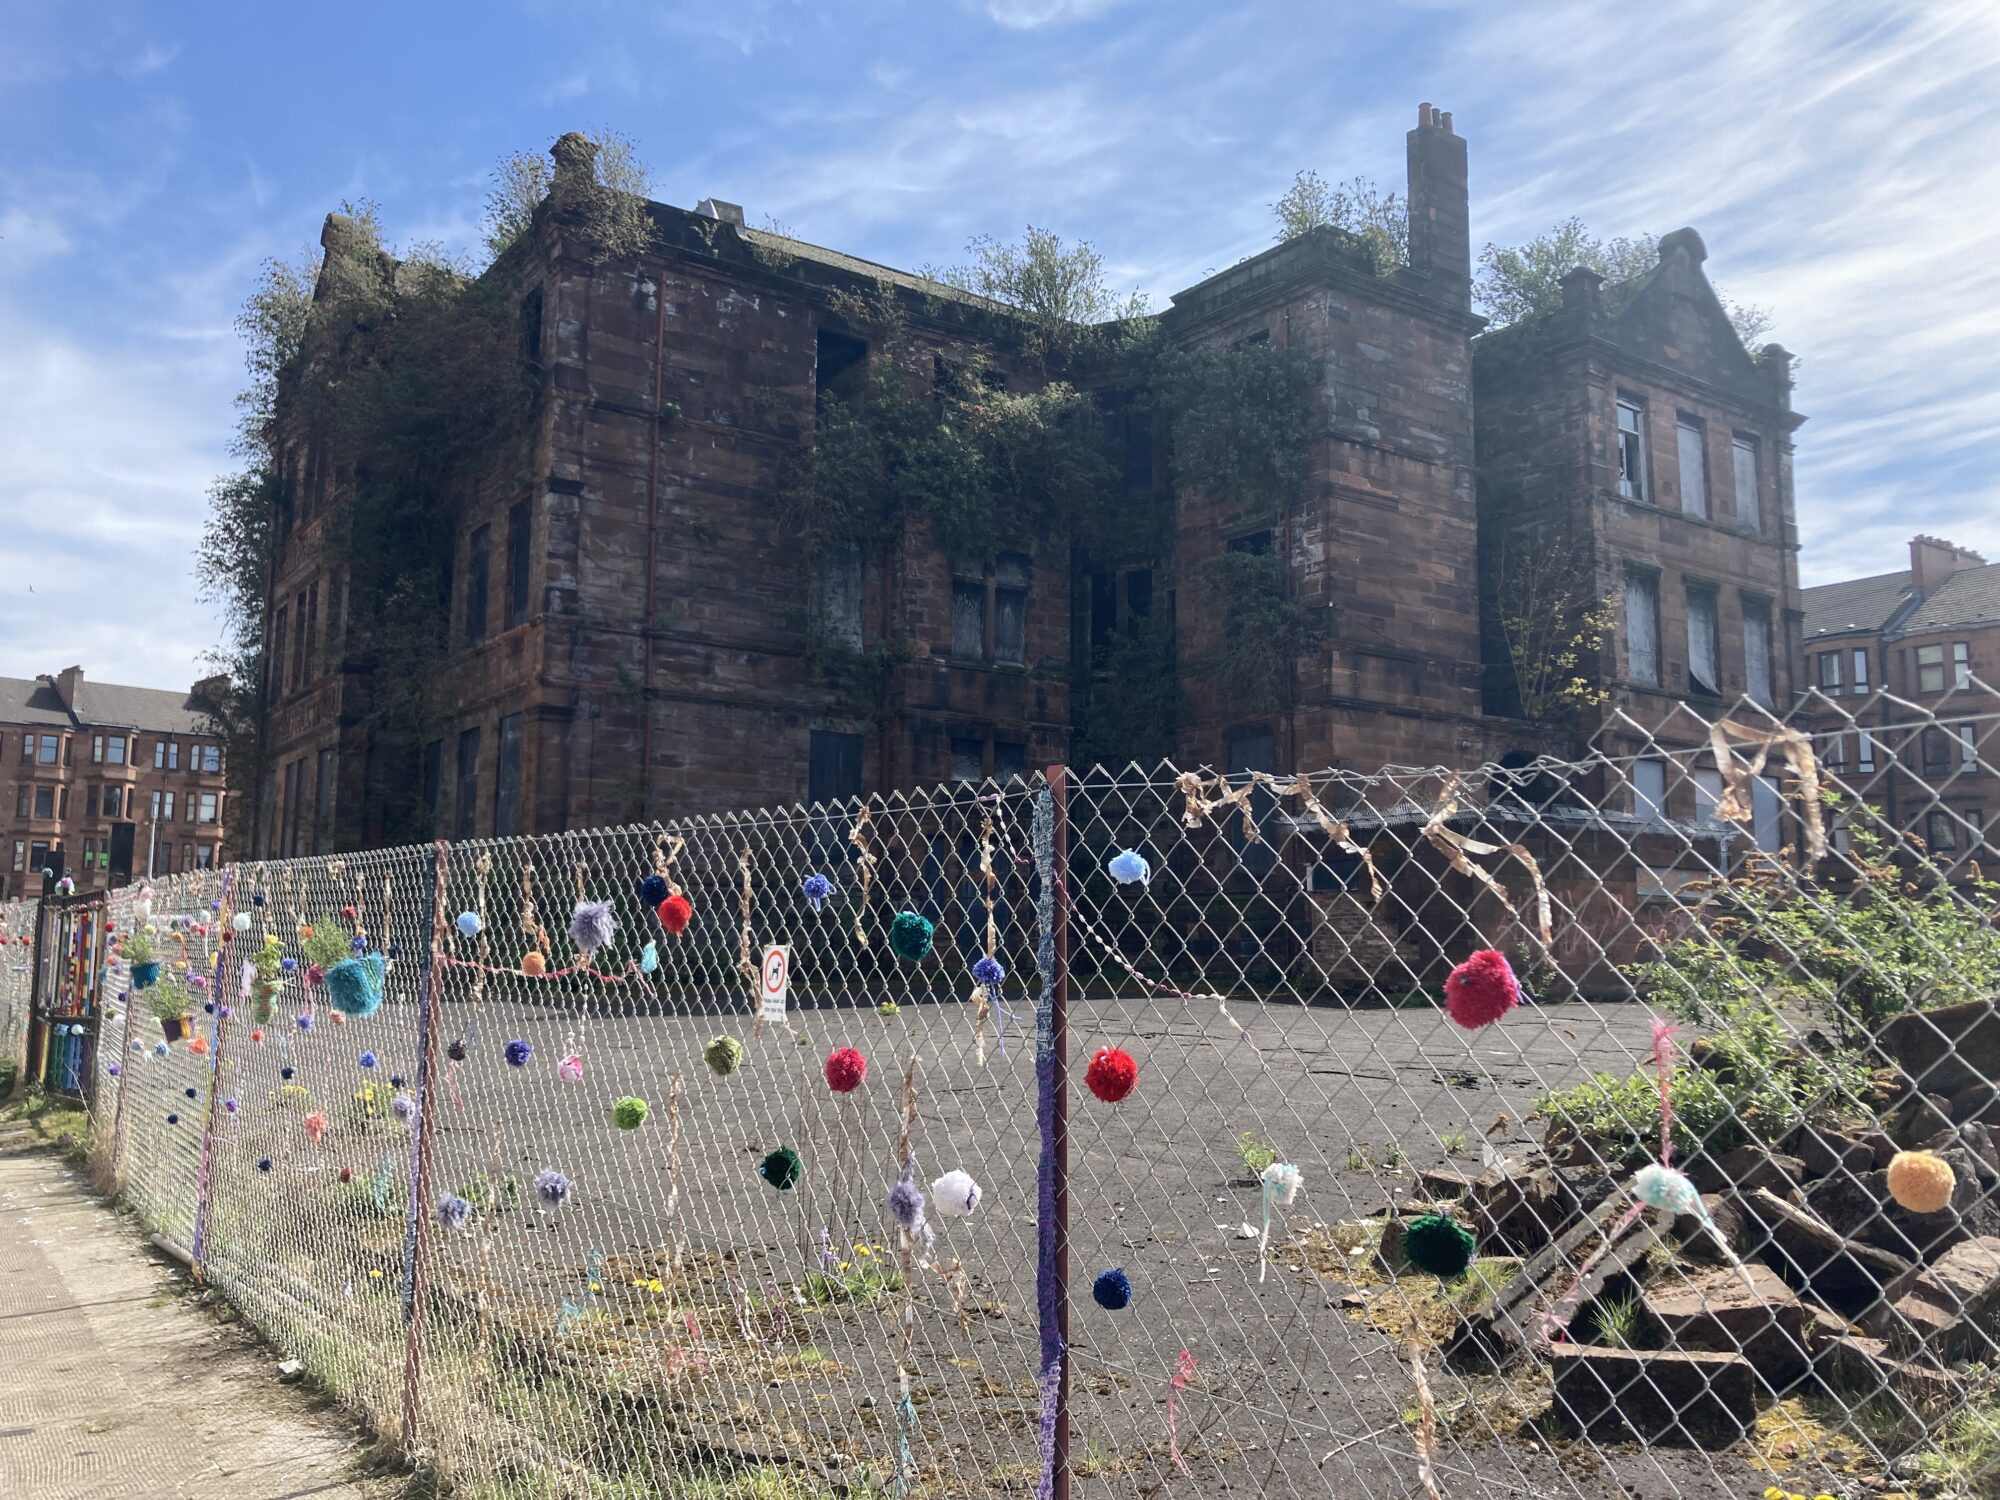 An old dilapidated school in the background, a railing with colourful knitting on it in the foreground